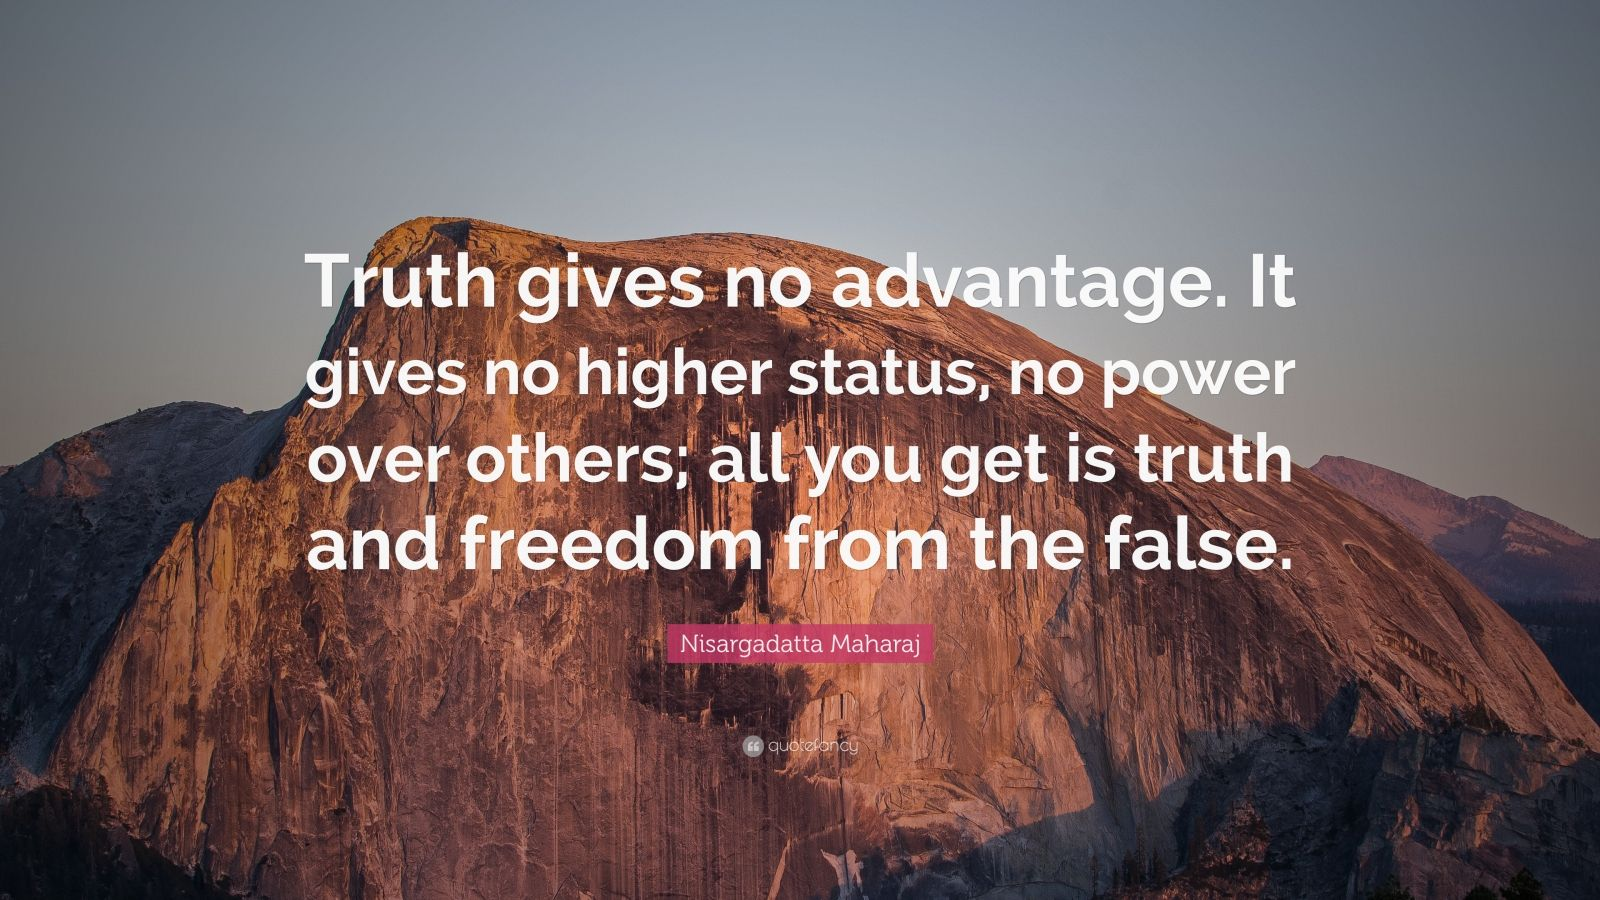 """Nisargadatta Maharaj Quote: """"Truth gives no advantage. It gives no higher status, no power over others; all you get is truth and freedom from the false."""""""